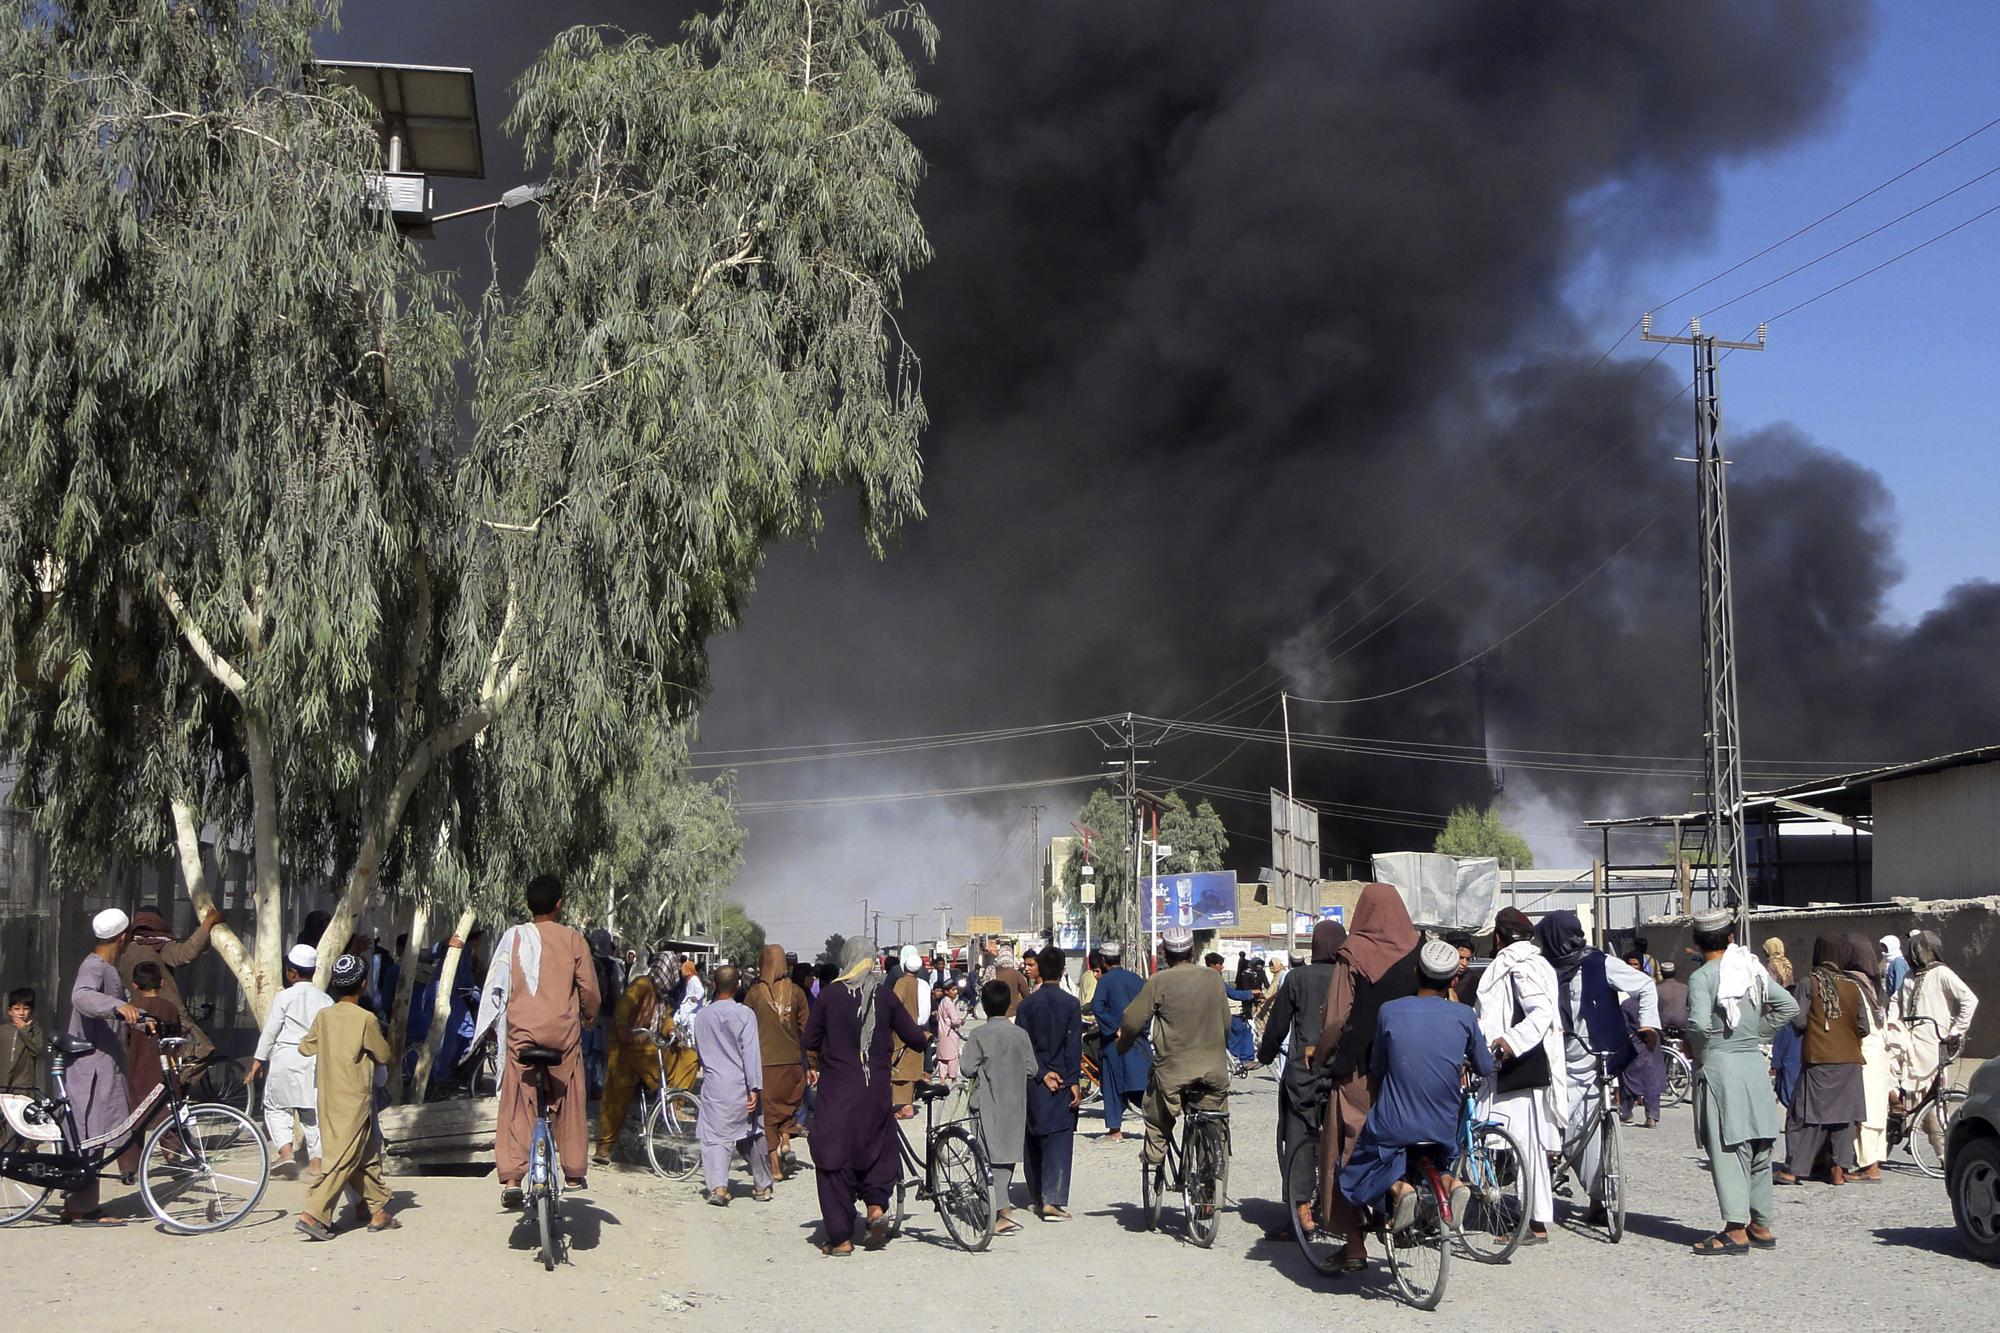 Plumes of smoke rise into the sky after fighting between the Taliban and Afghan security personnel in Kandahar, Afghanistan, southwest of Kabul, on Thursday, Aug. 12, 2021. (AP Photo/Sidiqullah Khan)